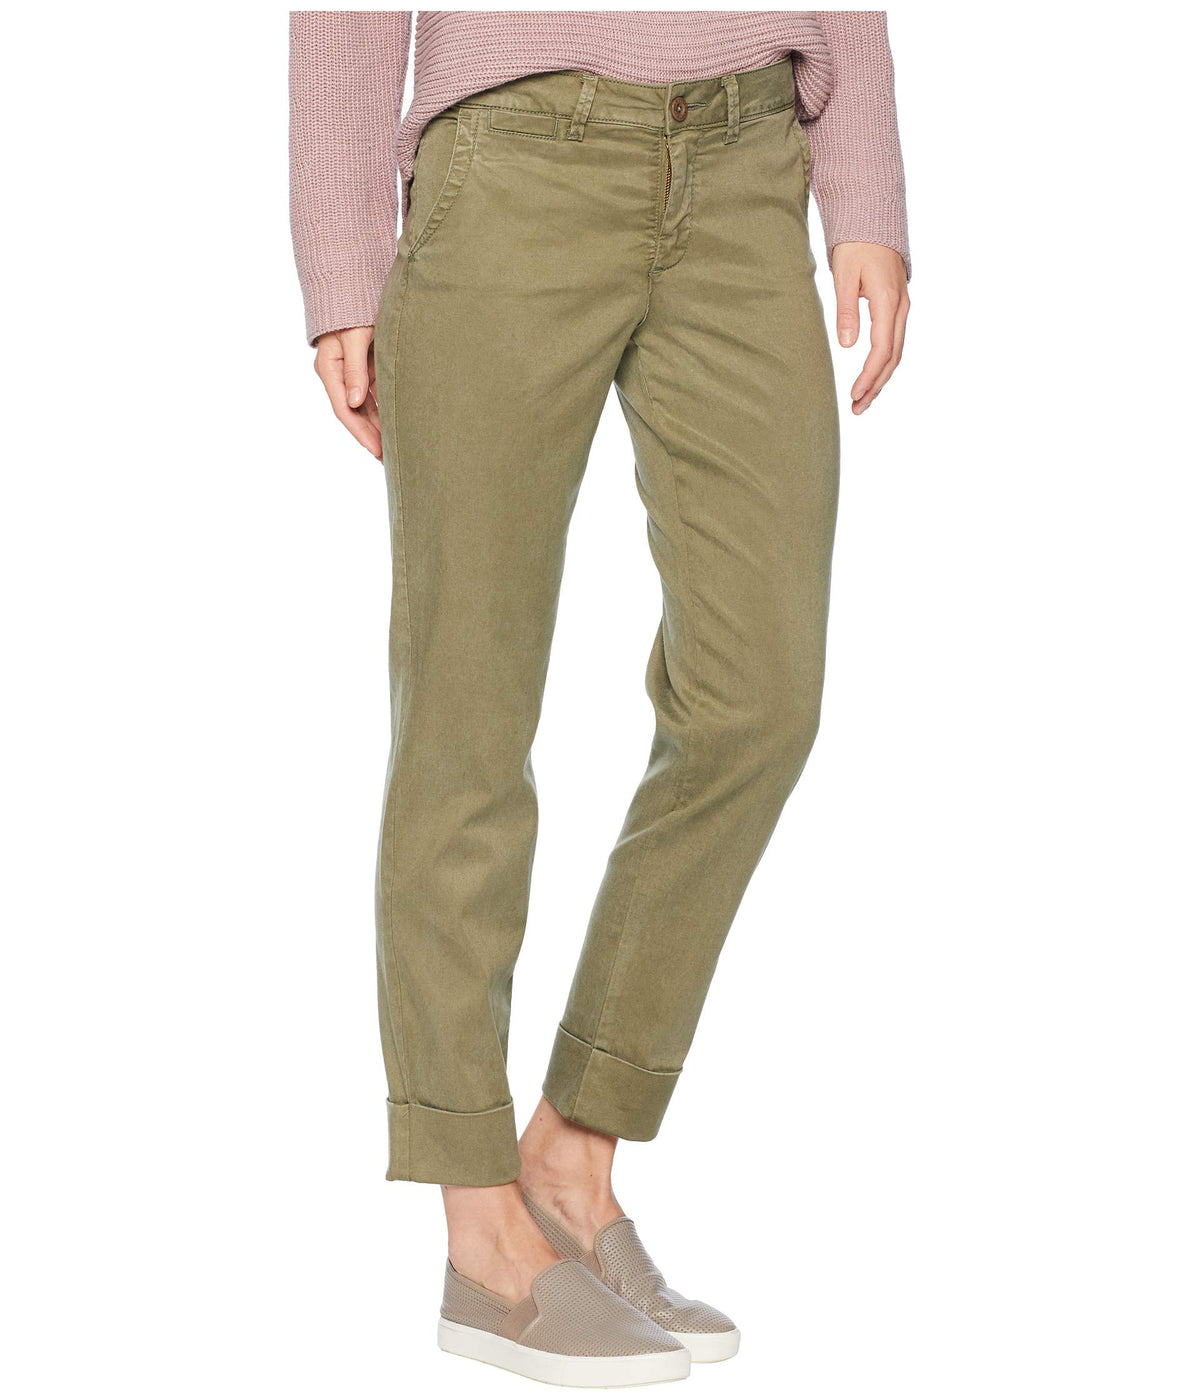 Skinny Chino Ankle w/ Clean Cuff in Olive